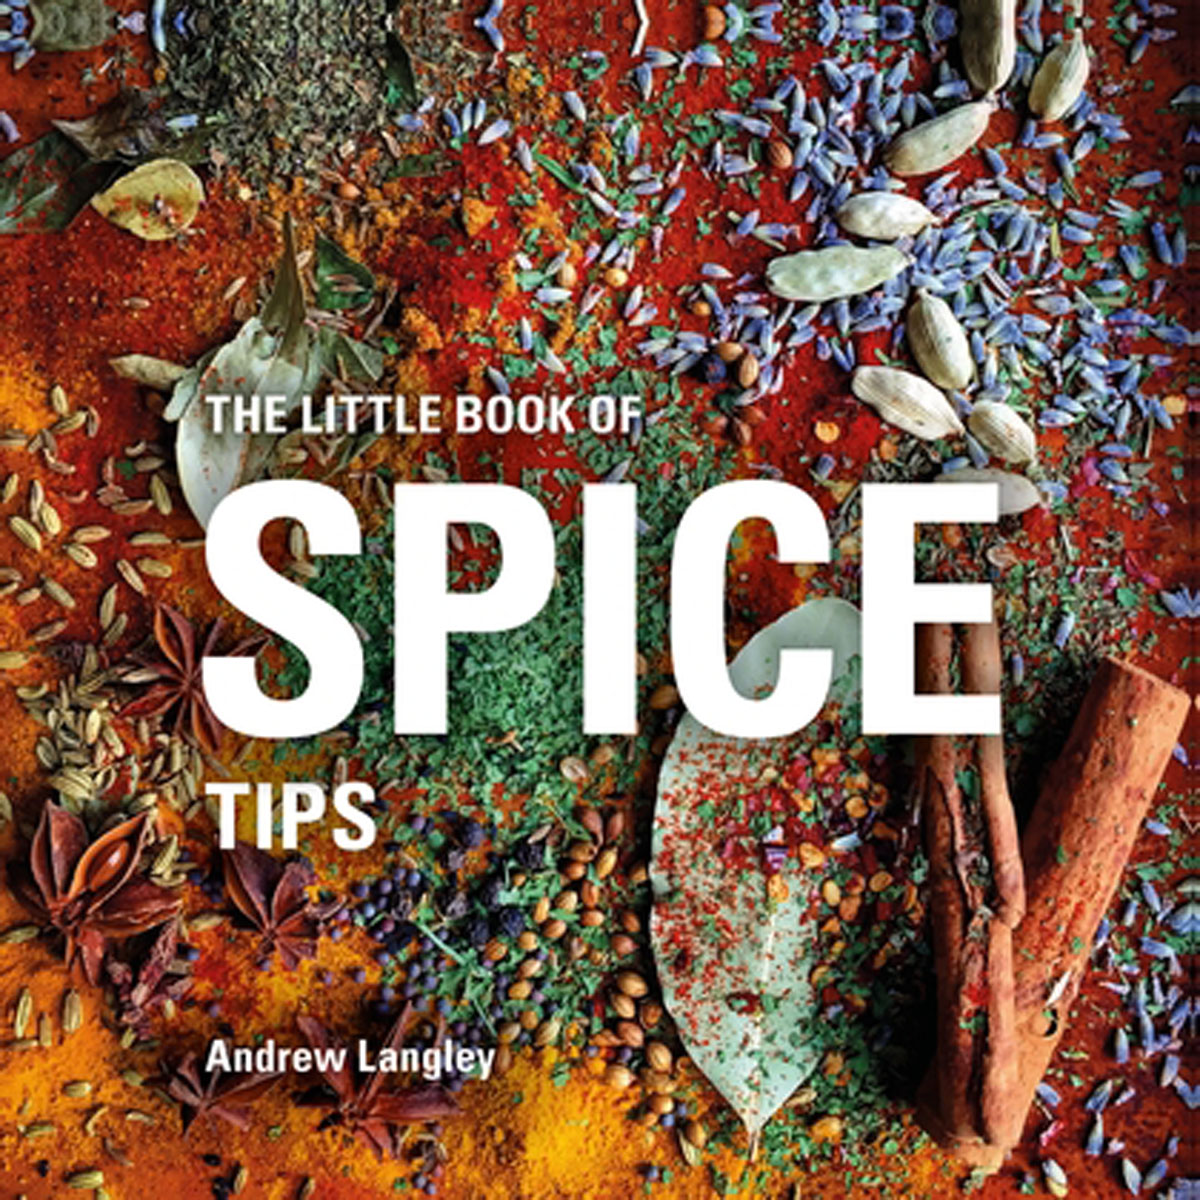 The Little Book of Spice Tips john cross the little black book for managers how to maximize your key management moments of power